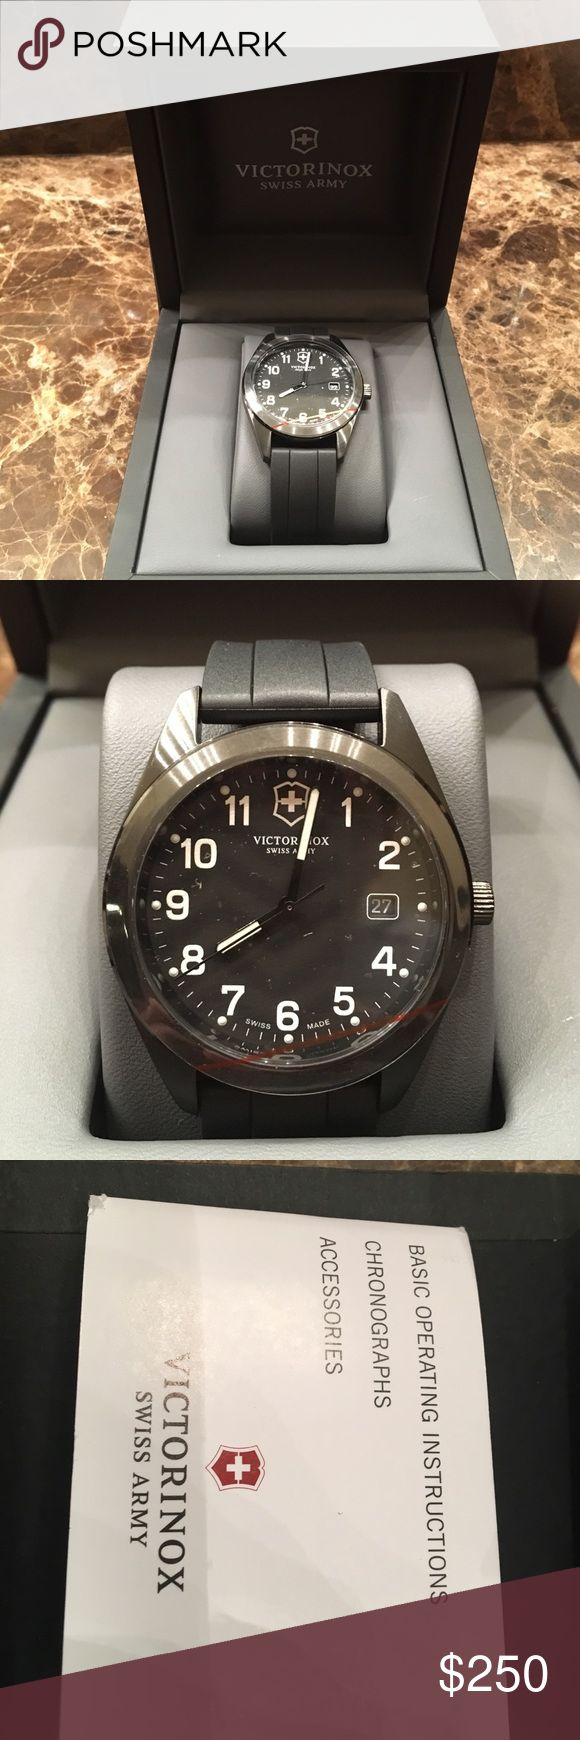 Victorinox Swiss Army Watch Black Swiss Army Watch, black adjustable strap. Never worn. Brand new. Received as a gift. Swiss Army Accessories Watches